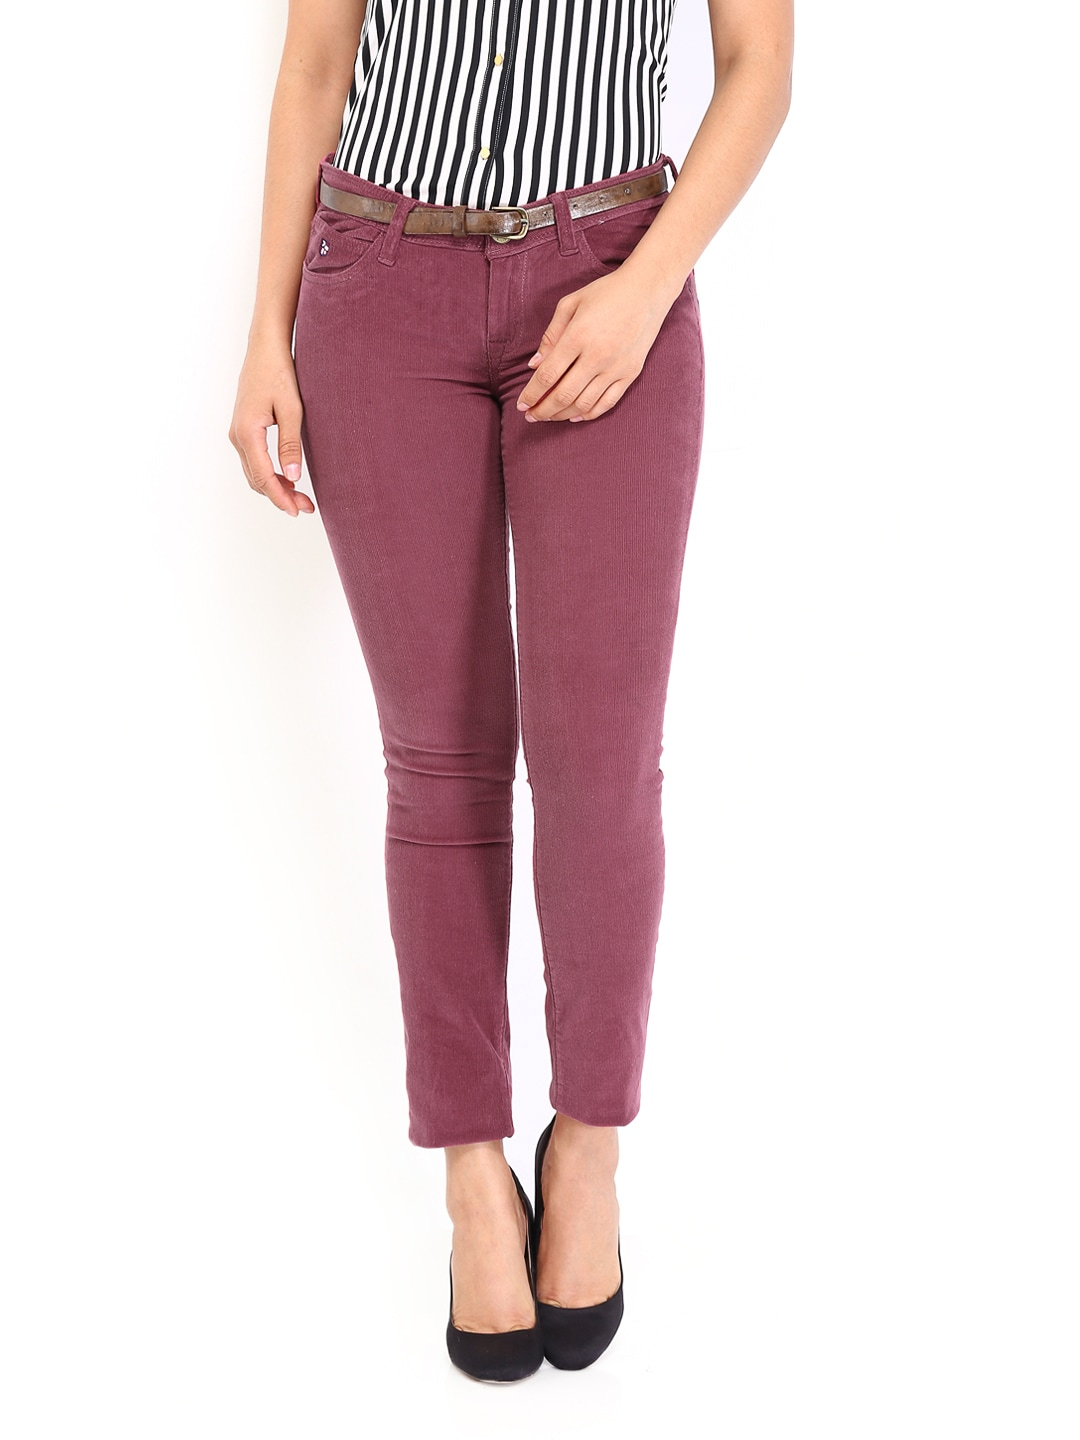 U.S. Polo Assn. Women Burgundy Super Skinny Fit Corduroy Trousers